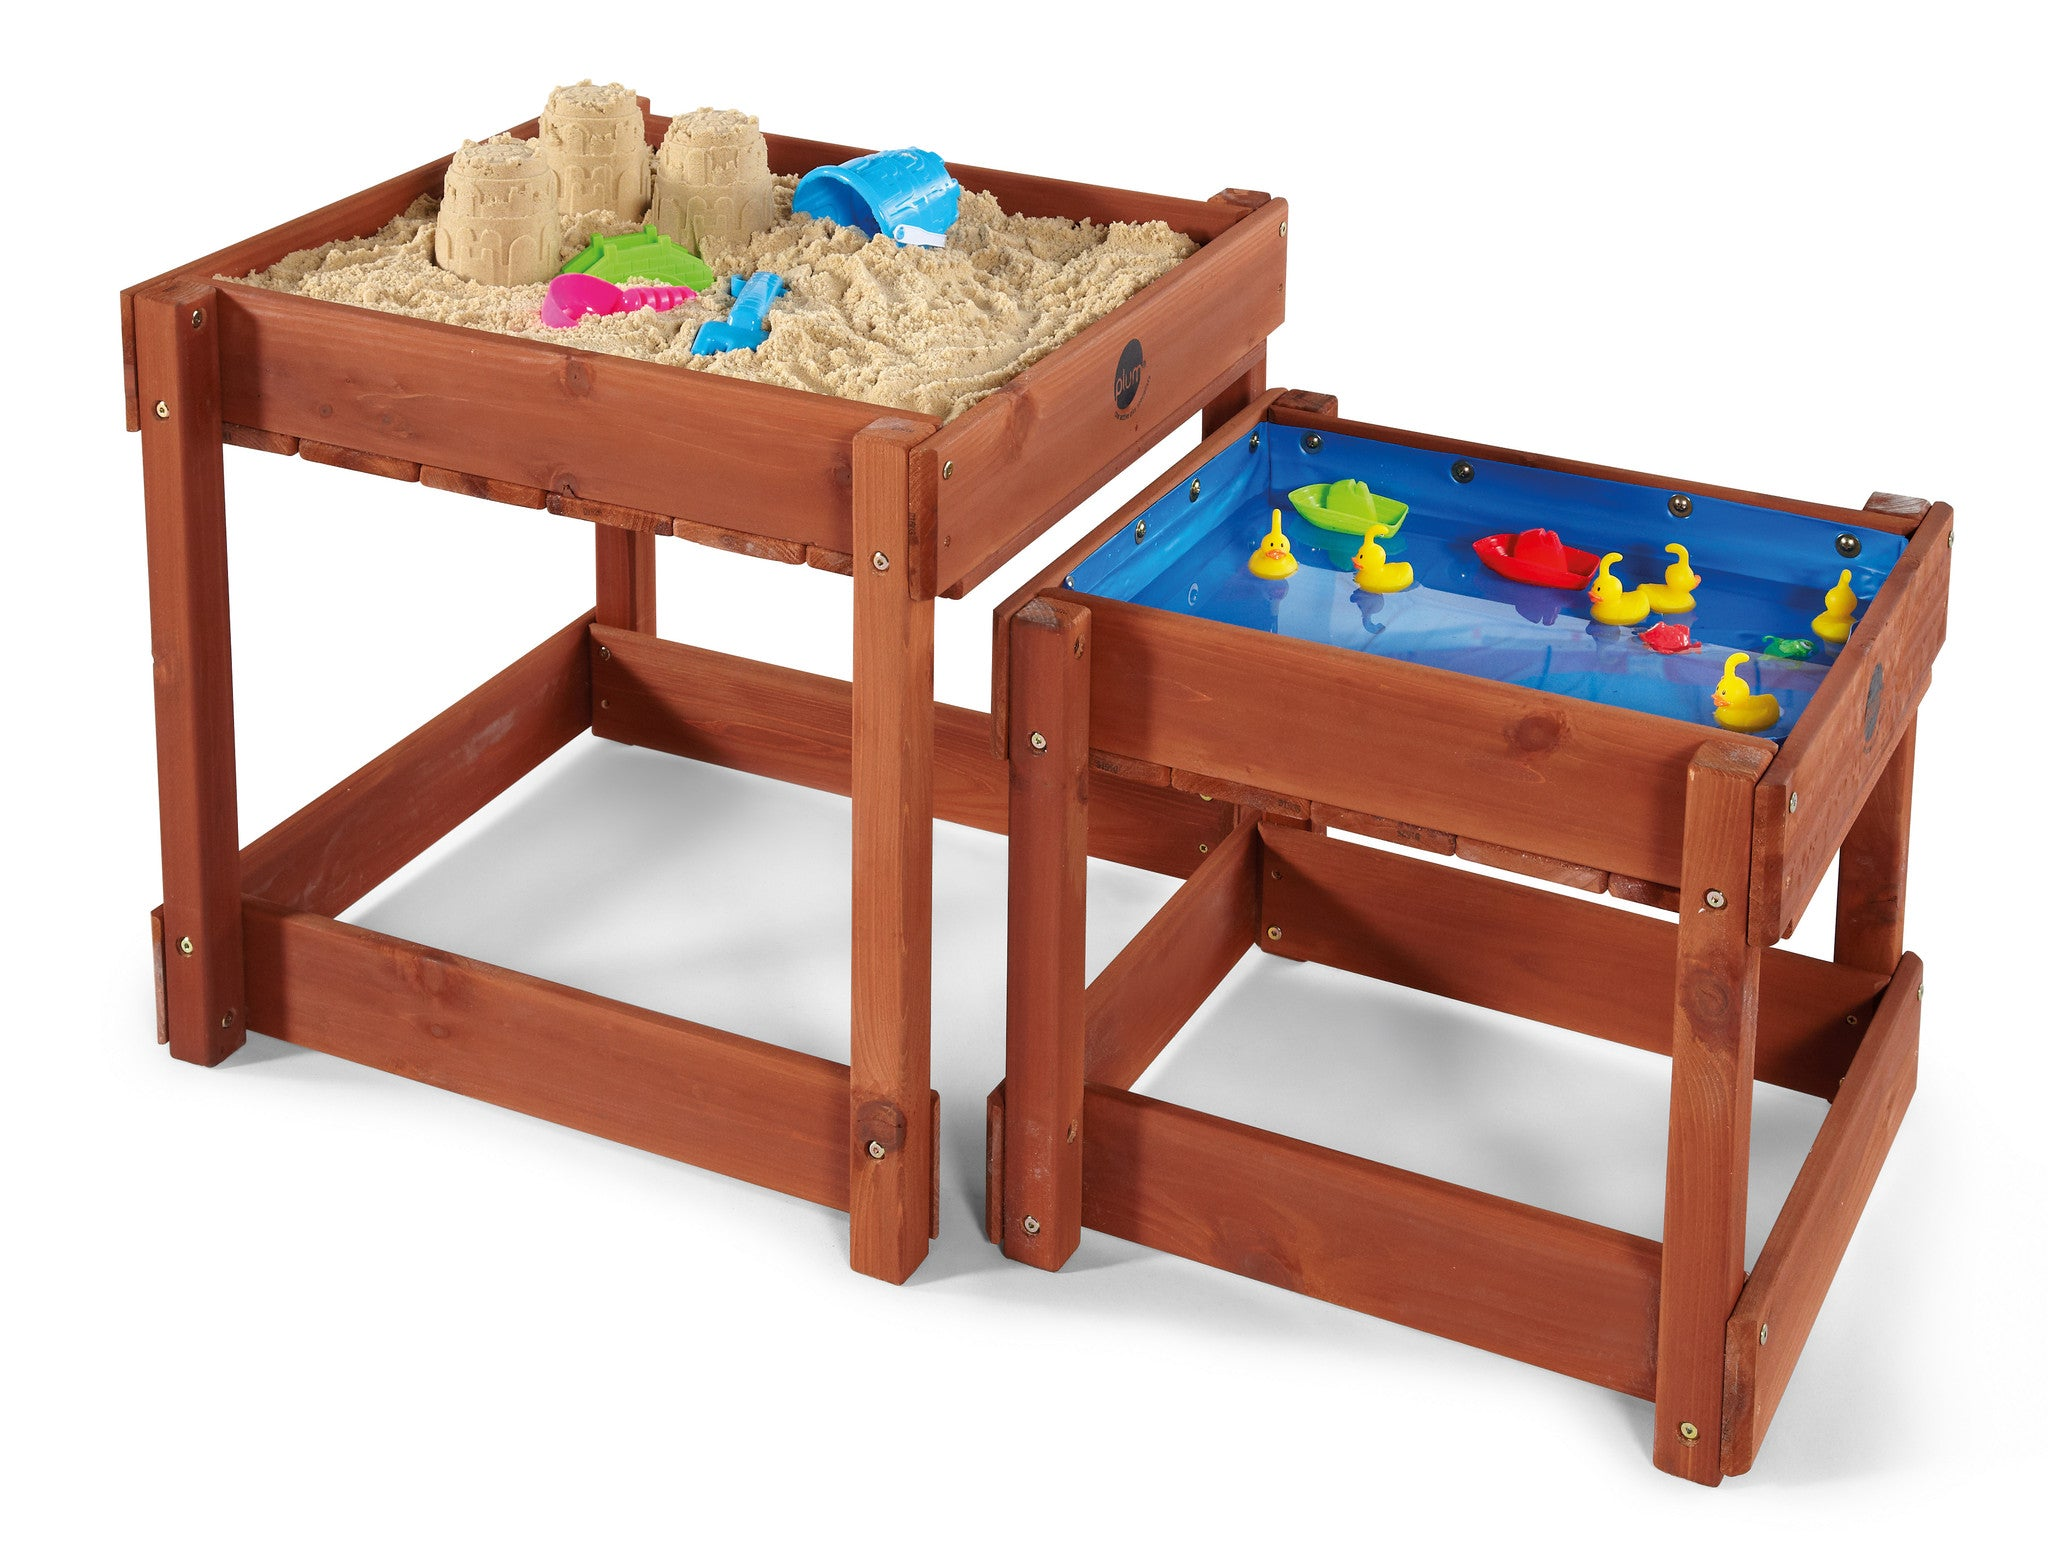 Plum Sandy Bay Sand And Water Tables Set With Protective Cover   Childhood  Home   Kids ...